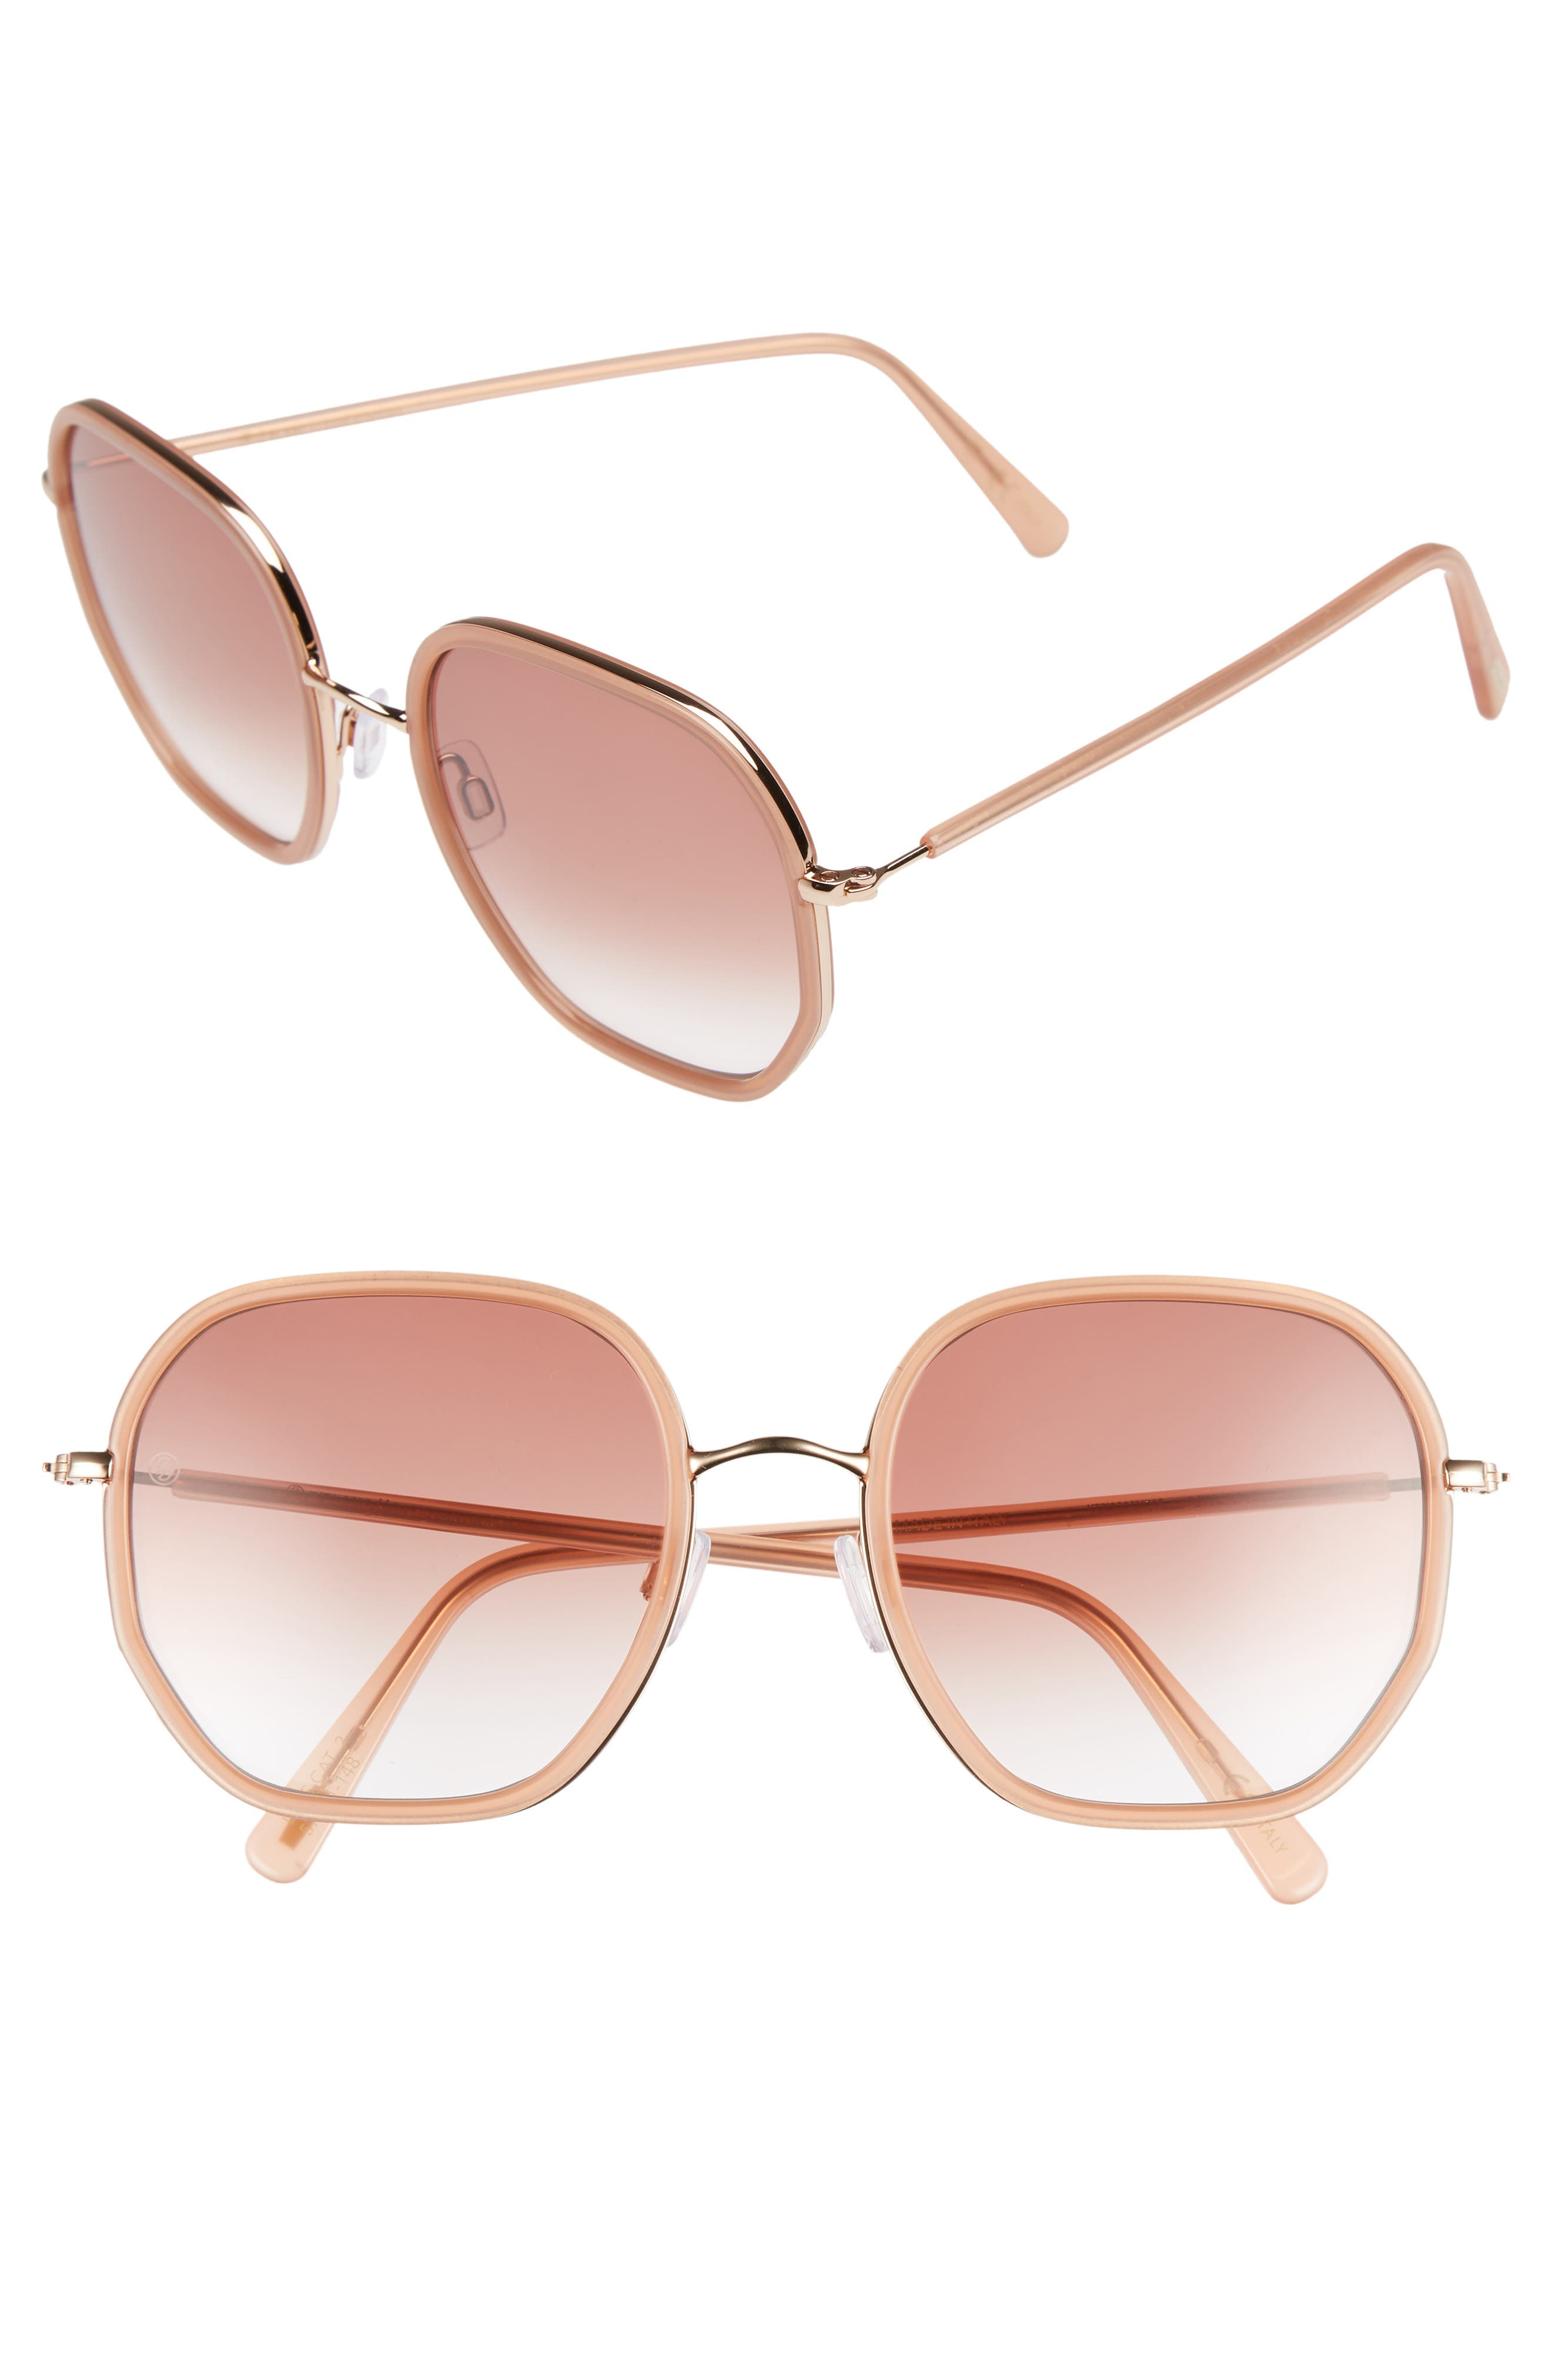 D'BLANC Rare Fortune 57mm Sunglasses,                         Main,                         color, Gold Sienna/ Rose